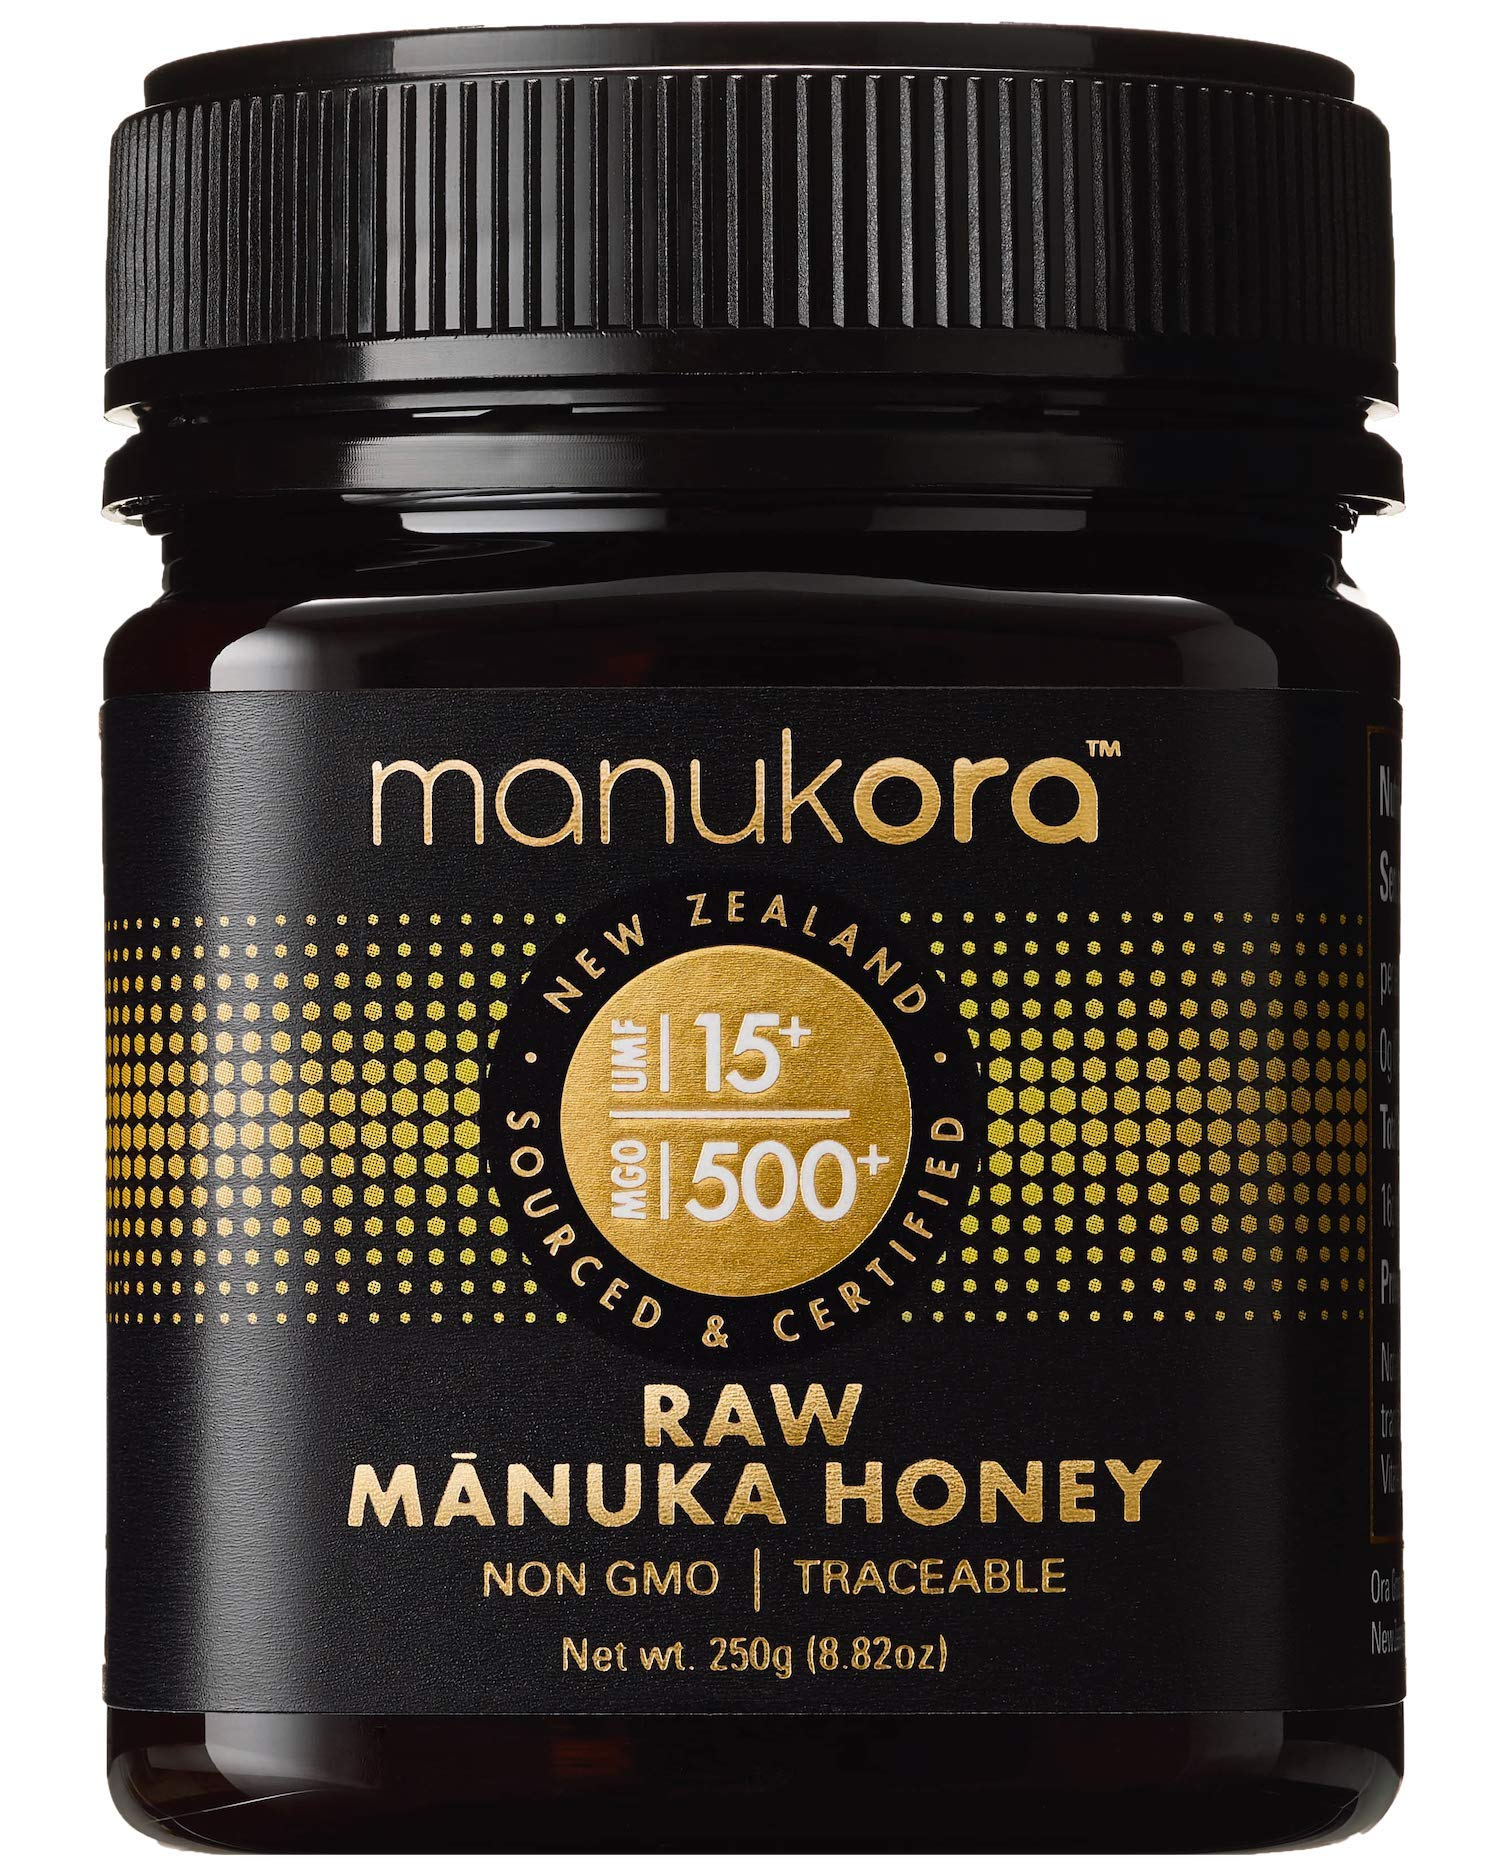 Manukora UMF 15+/MGO 500+ Raw Mānuka Honey (250g/8.8oz) Authentic Non-GMO New Zealand Honey, UMF & MGO Certified, Traceable from Hive to Hand by Manukora (Image #1)